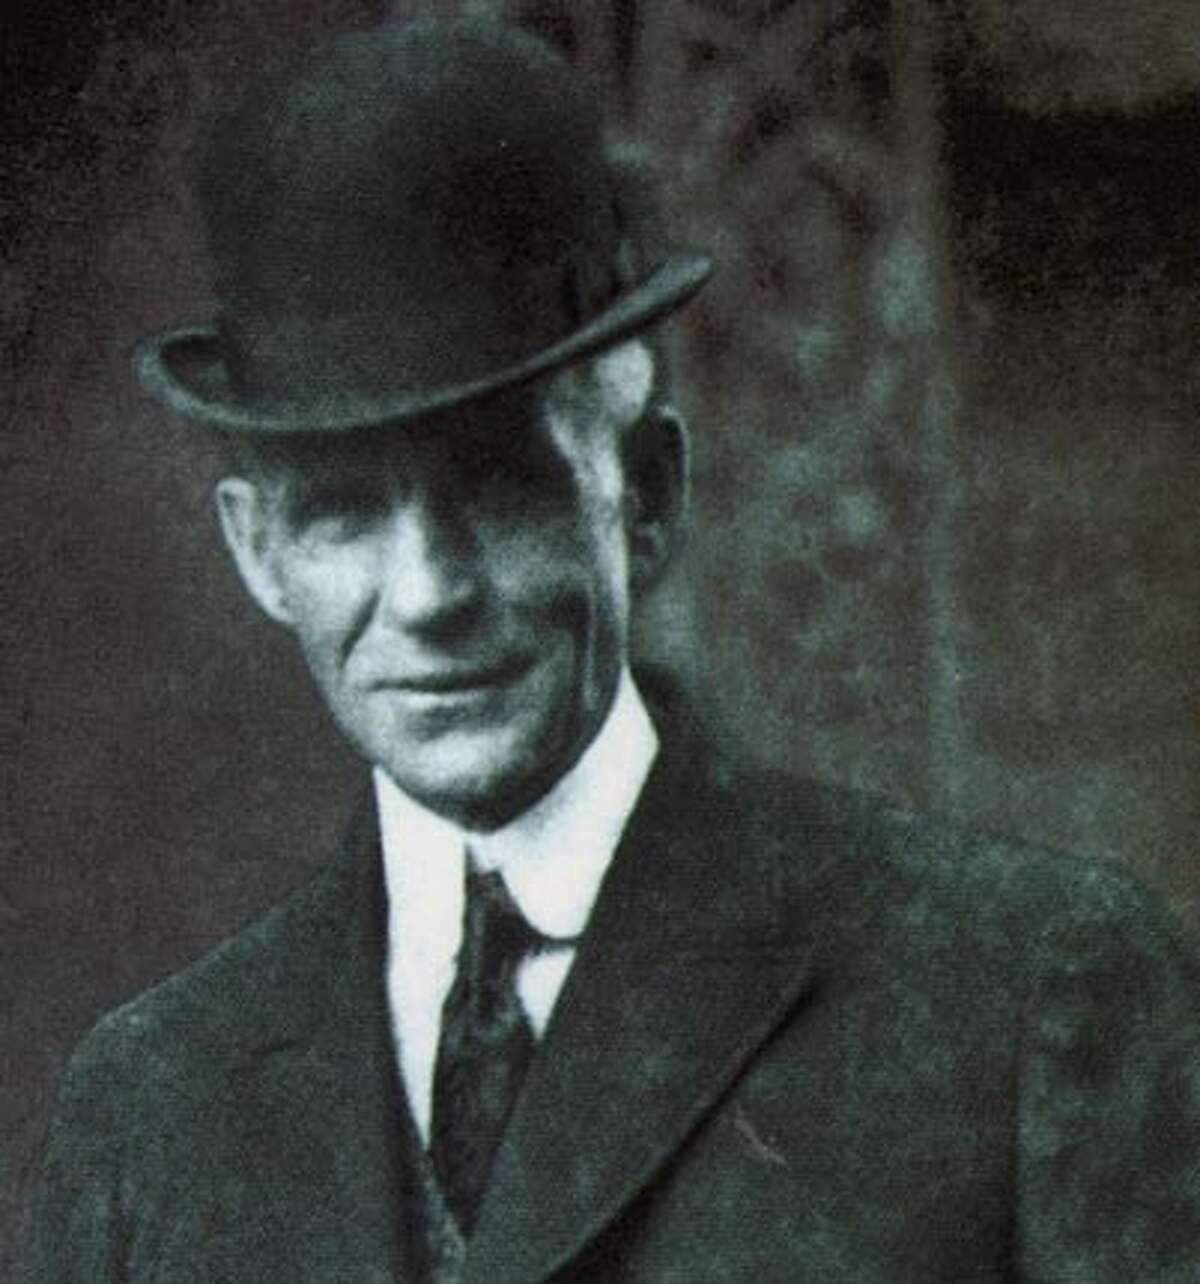 Henry Ford from book cover